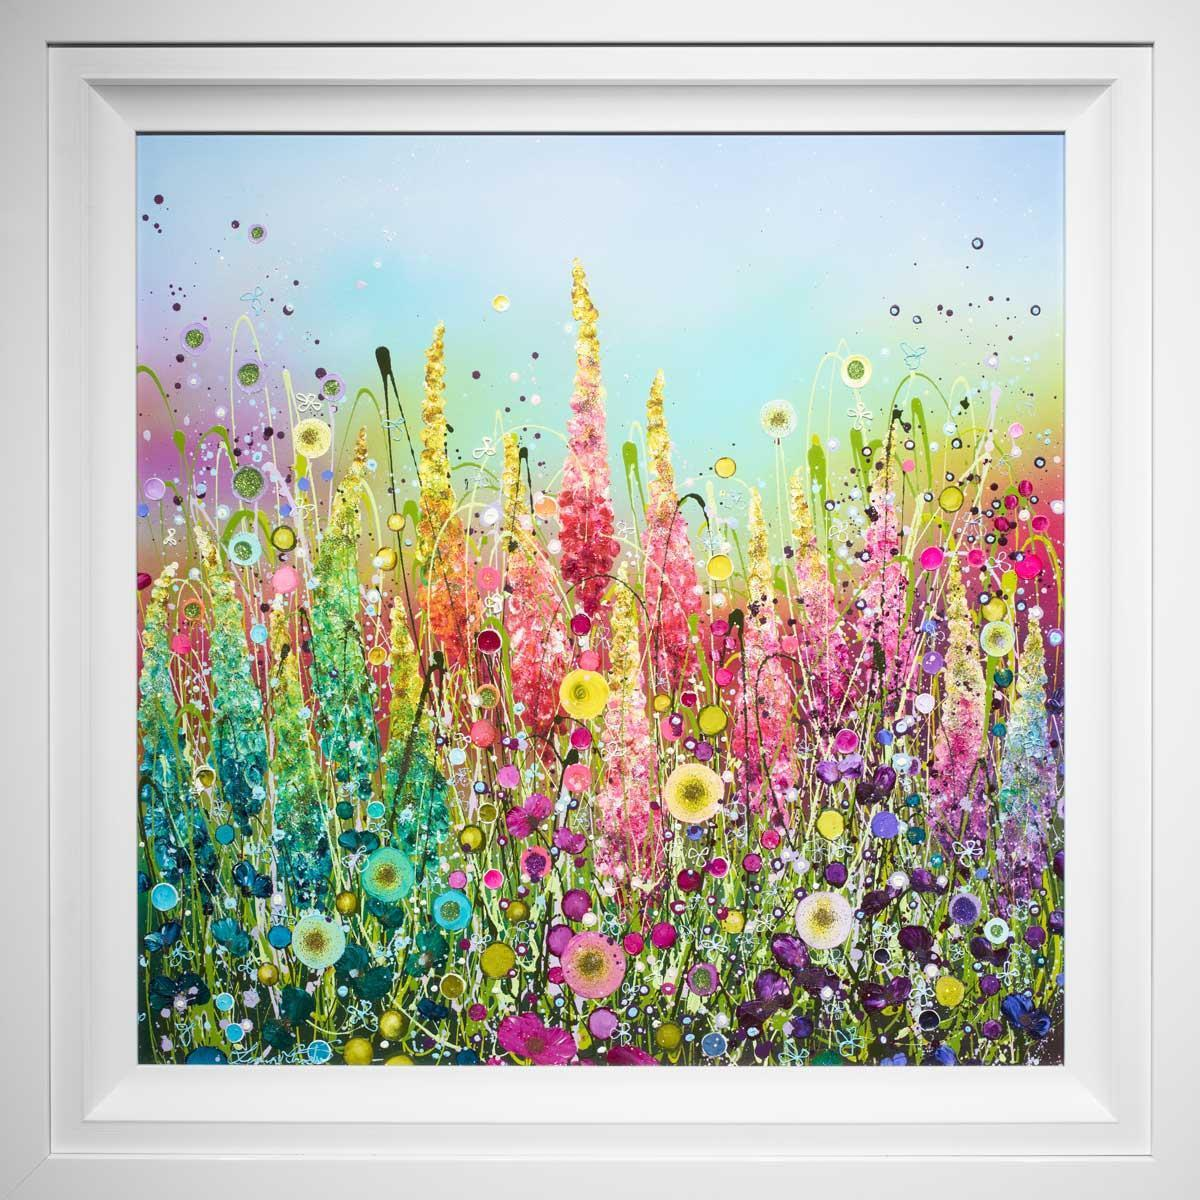 All The Exquisite Flowers - Original Leanne Christie